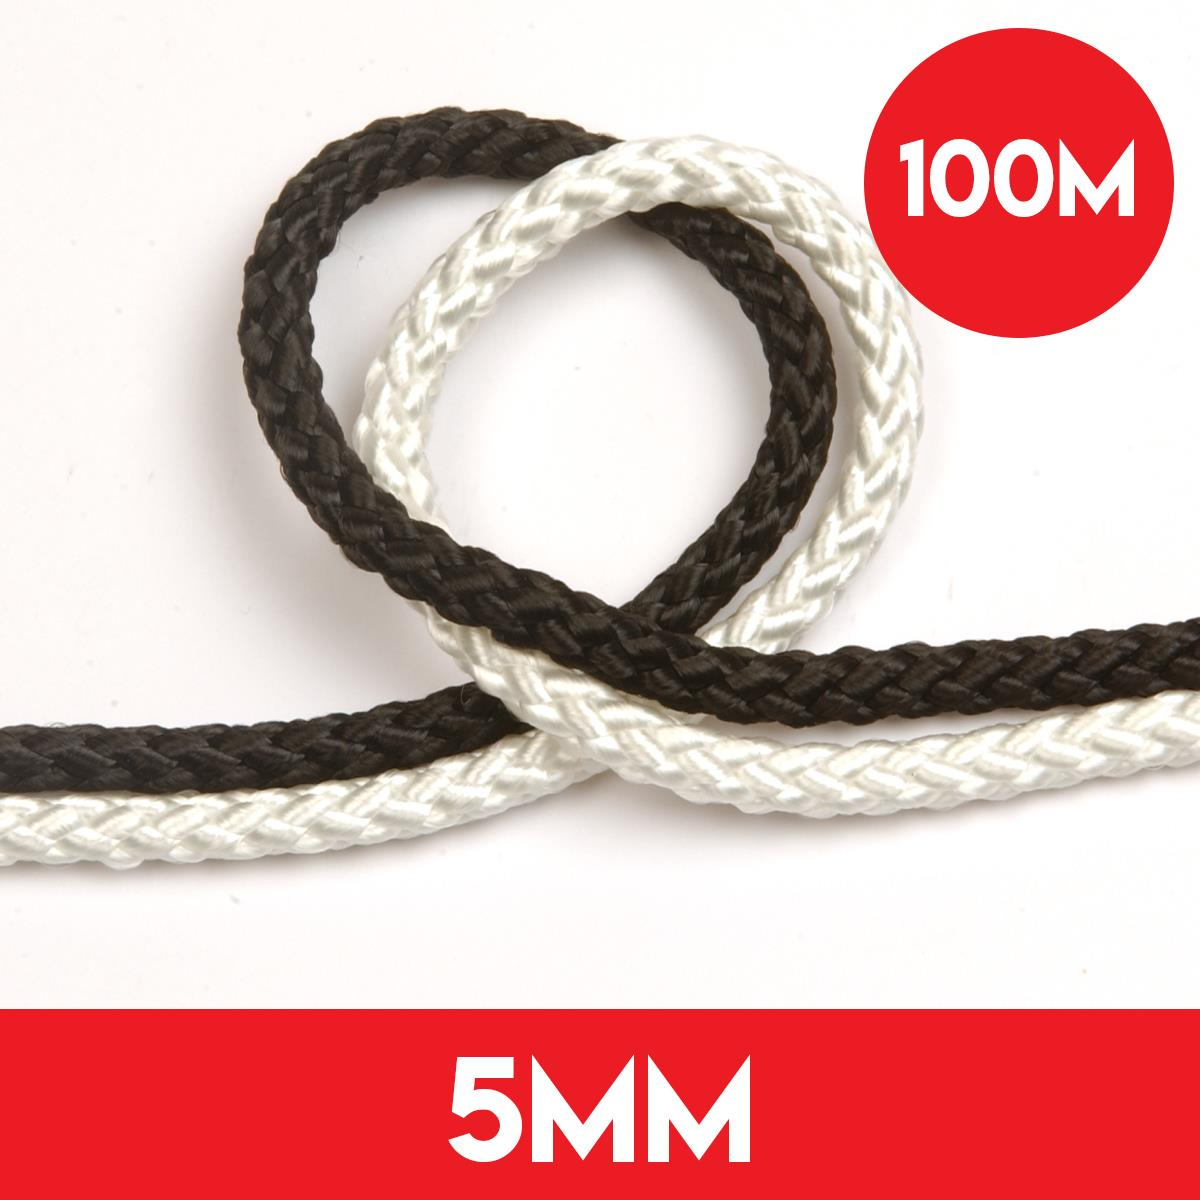 100m of 5mm 8 Plait Standard Polyester Rope